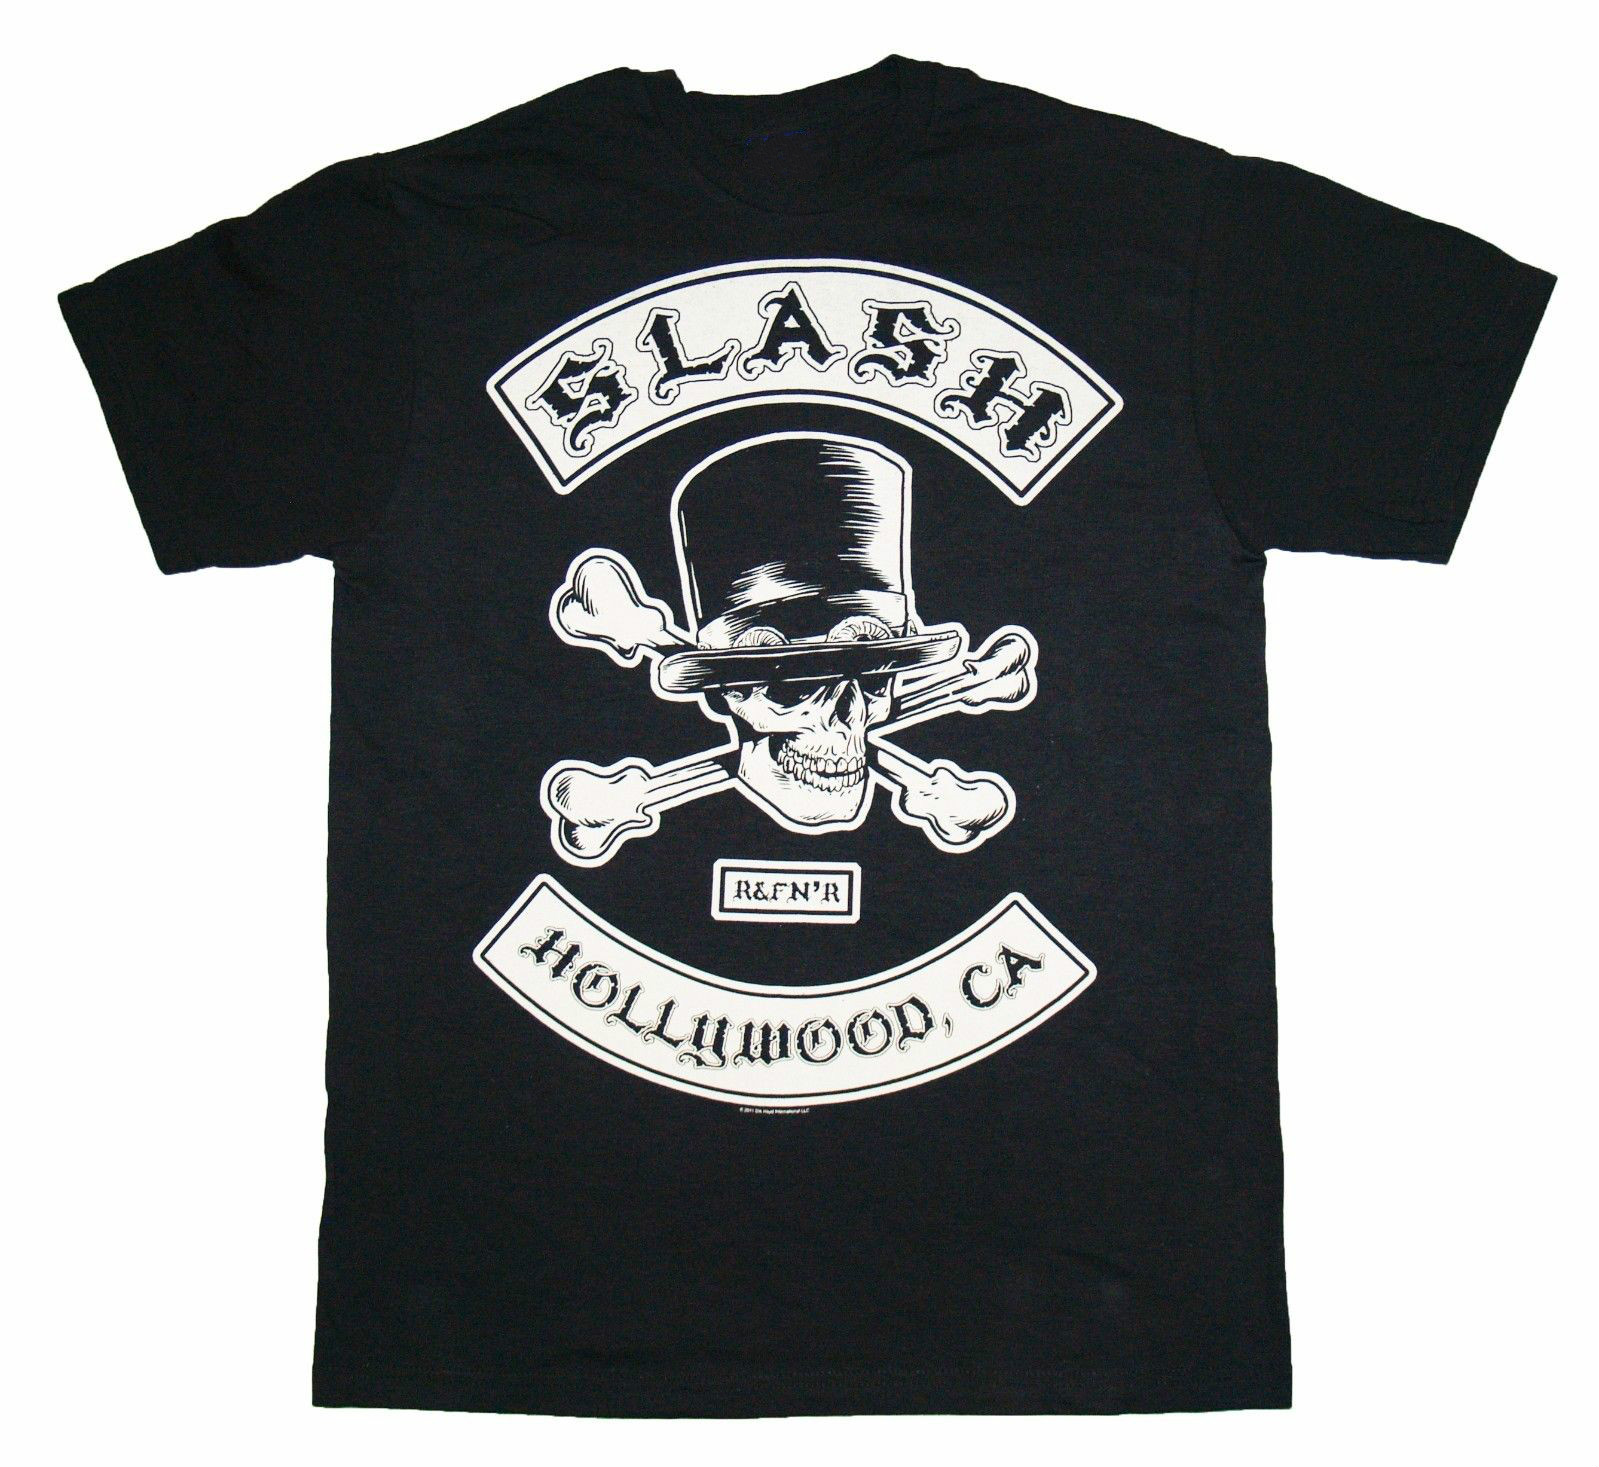 Gildan SLASH Hollywood T SHIRT Medium Brand New Official T Shirt Guns N Roses comprar camisetas de futbol